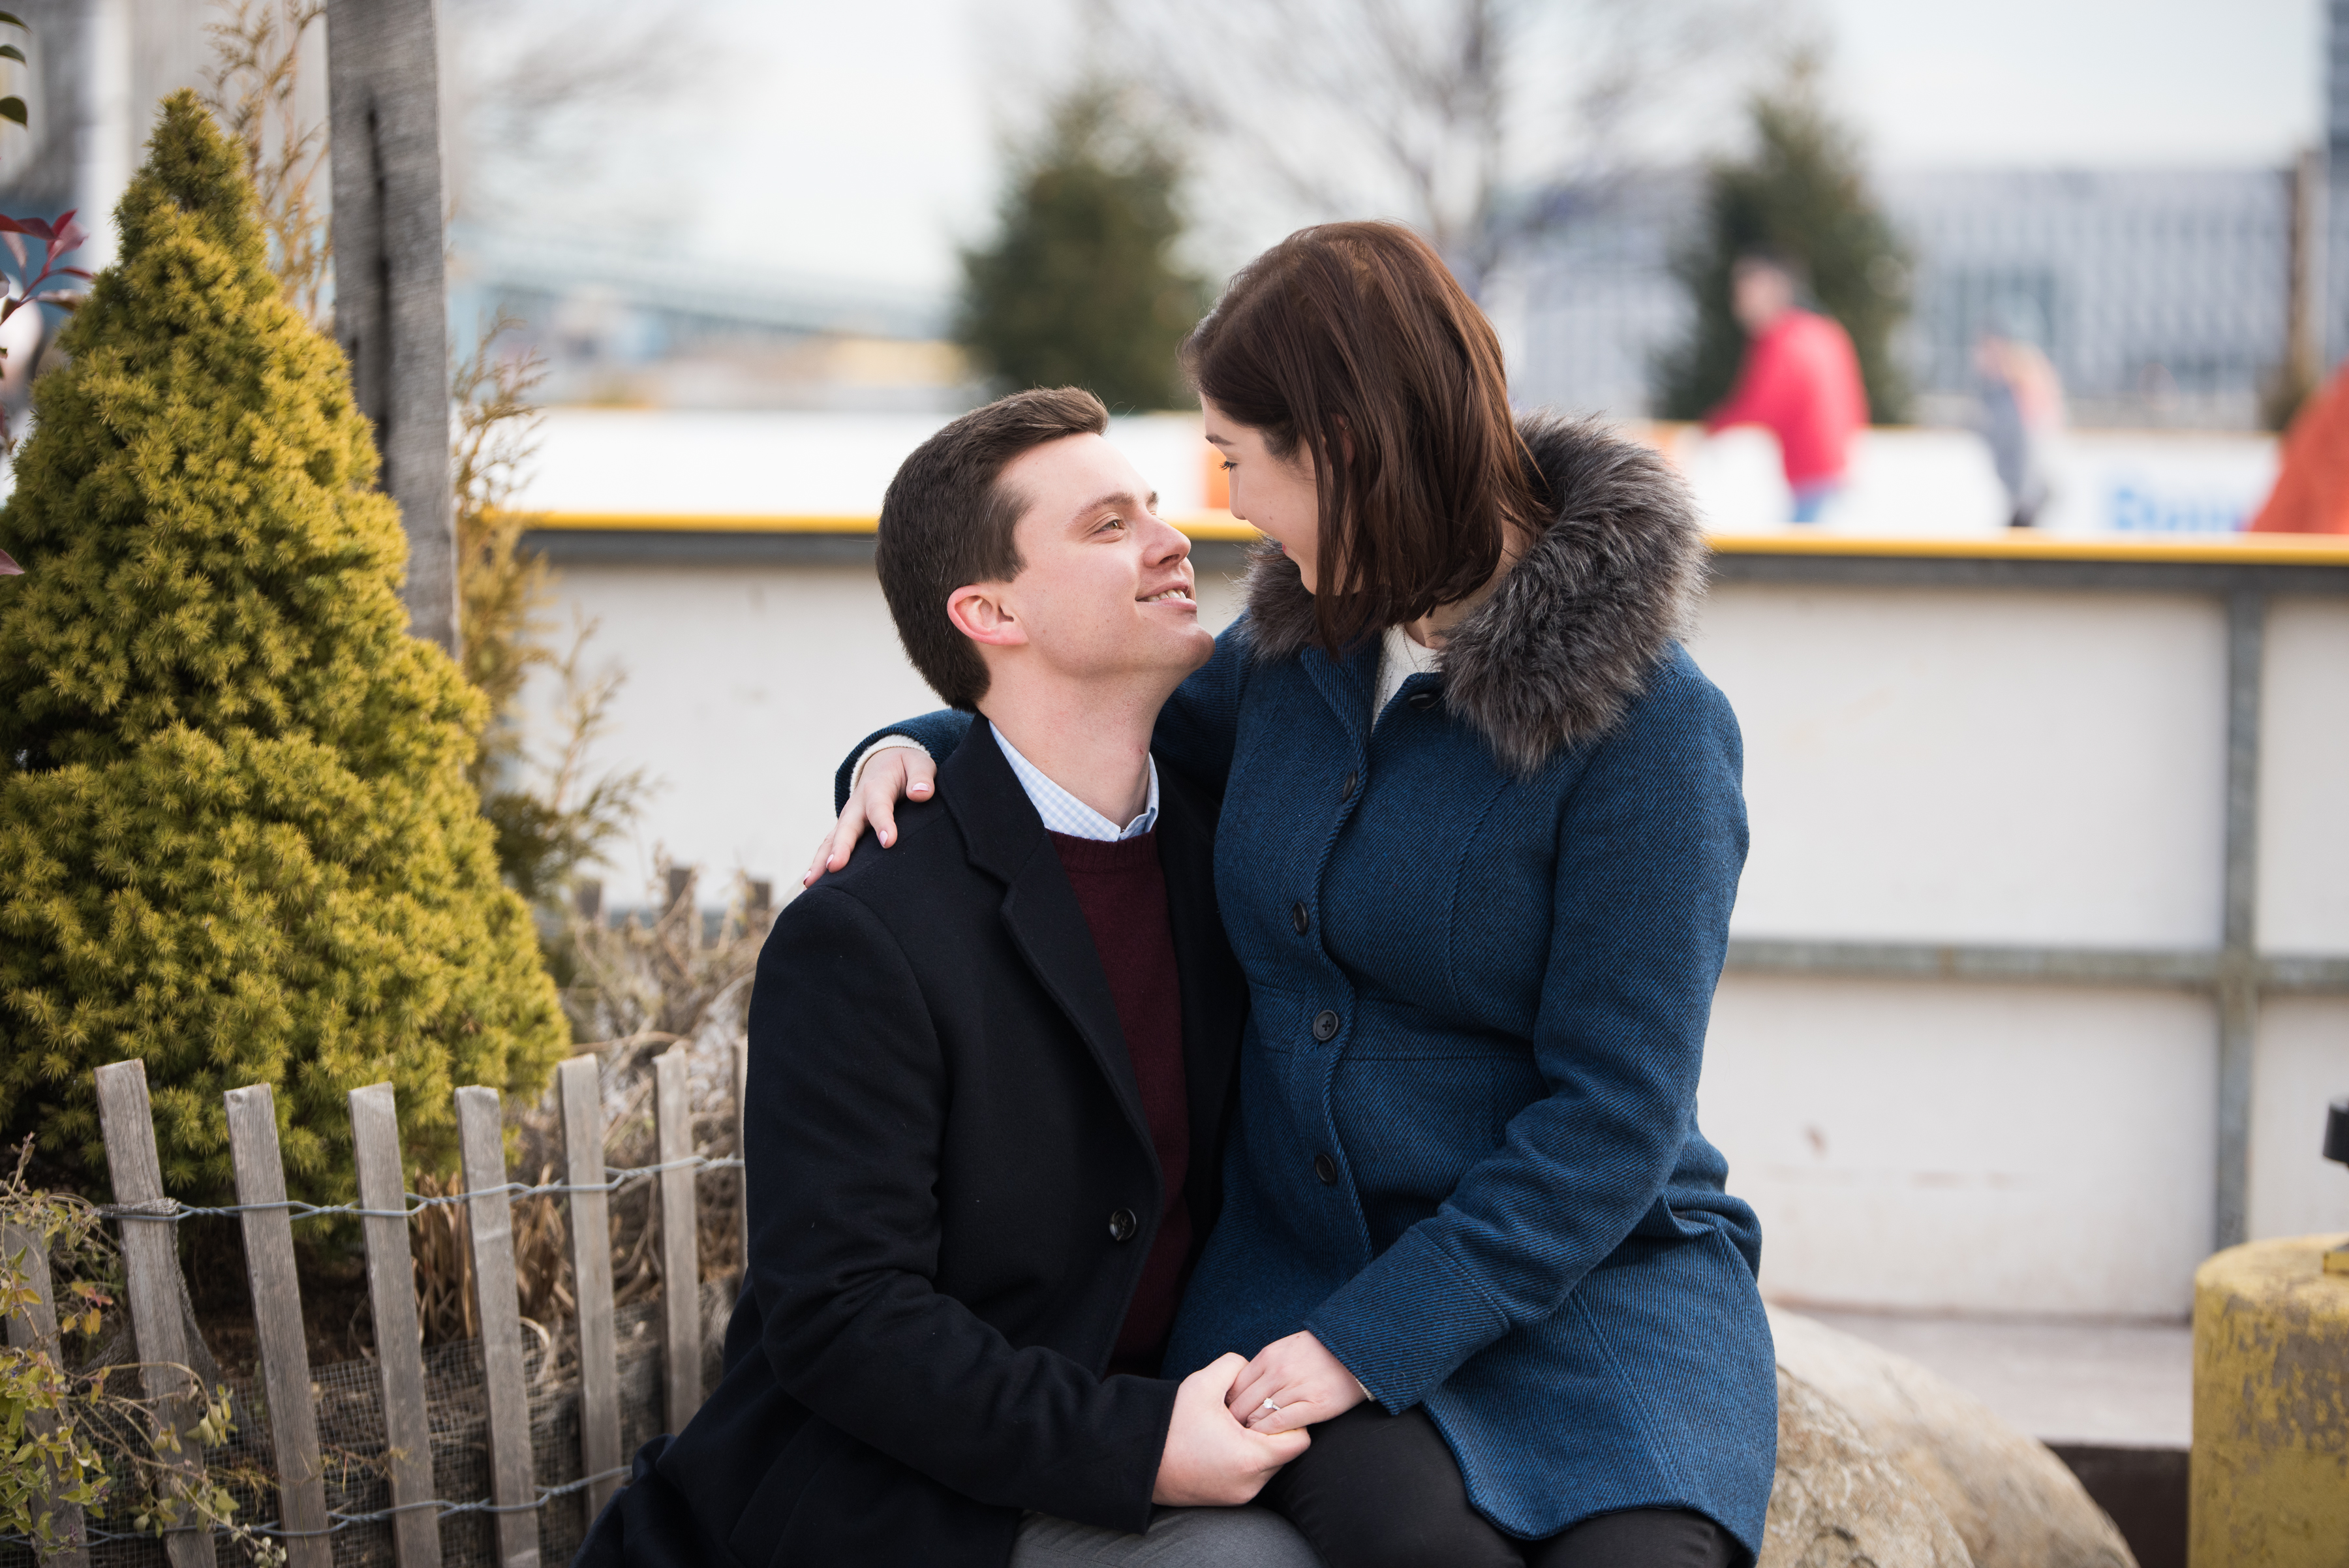 engaged couple sitting on bench outside